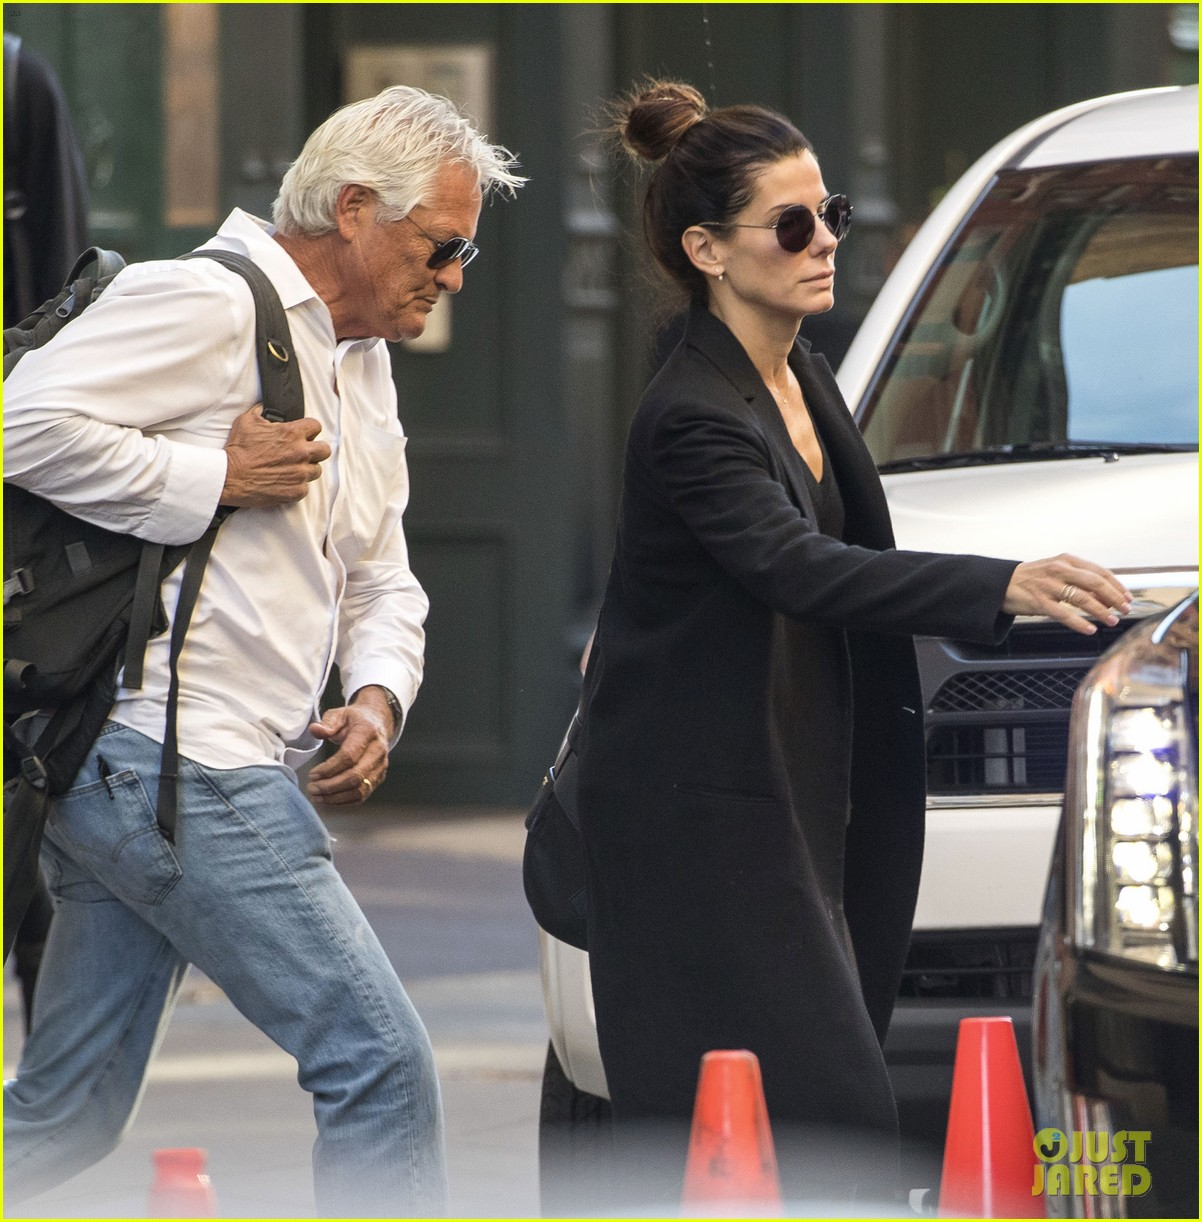 Who Is Married To Sandra Bullock